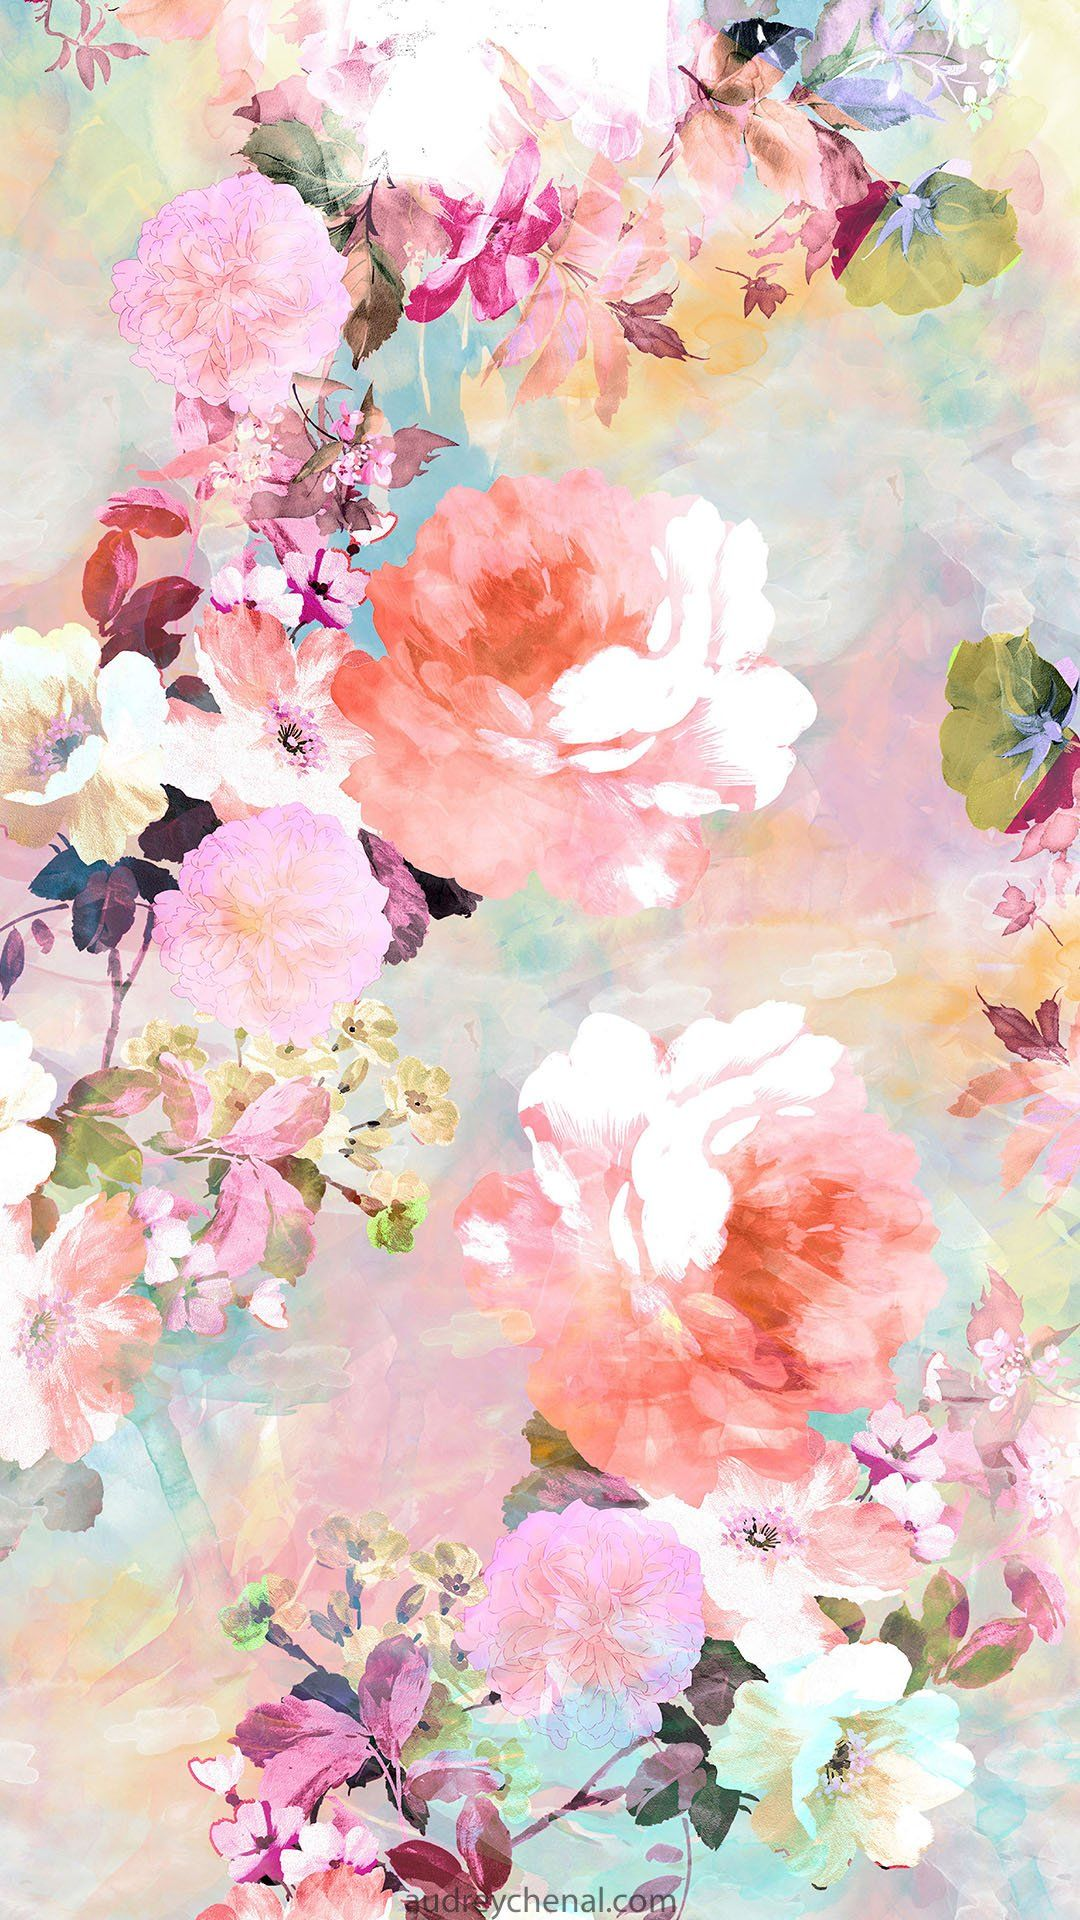 Free Smart Phone Wallpapers 1 Instagram Story Background Download Floral Wallpaper Iphone Floral Wallpaper Floral Watercolor Background